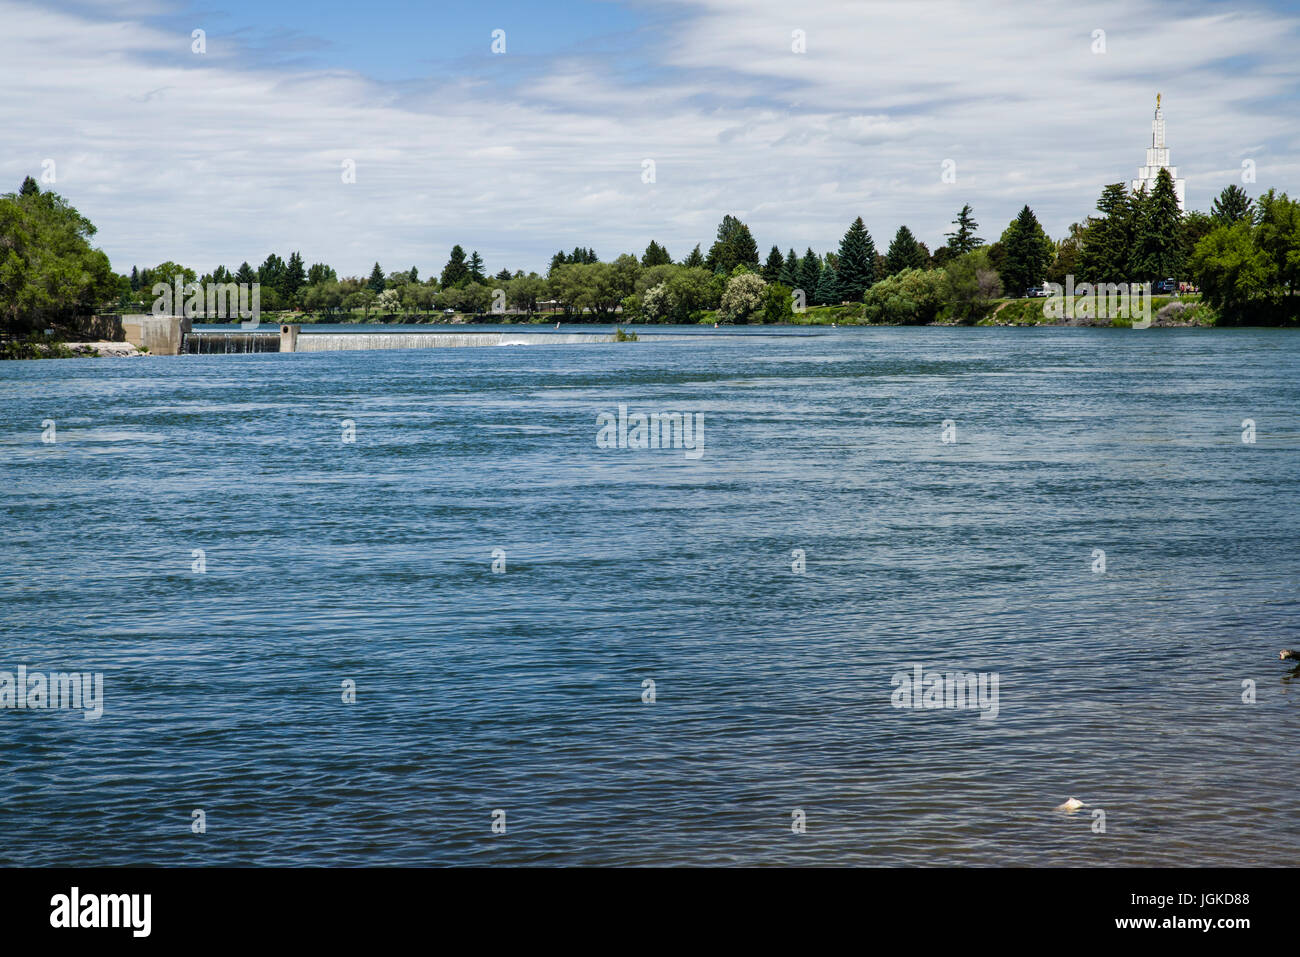 Idaho Falls Dam produces hydroelectric power for the city of Idaho Falls - Stock Image